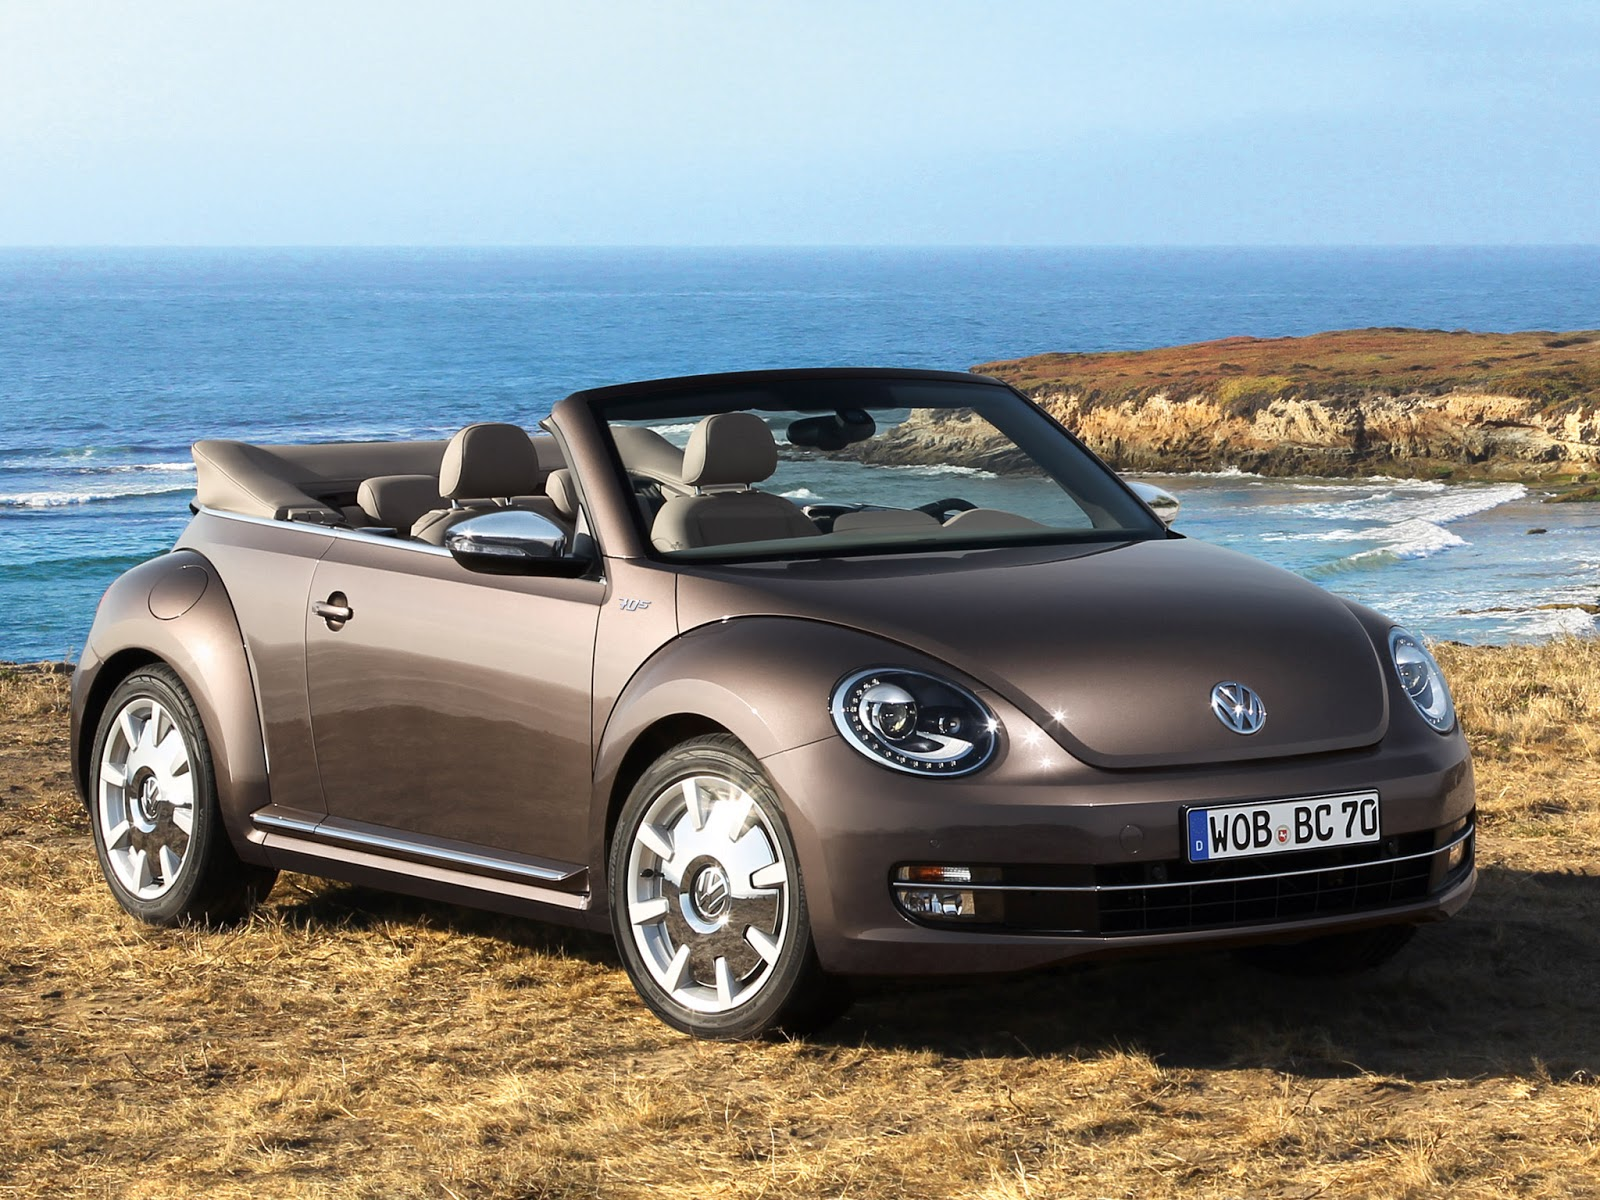 new car review 2013 volkswagen beetle convertible 70s edition cars. Black Bedroom Furniture Sets. Home Design Ideas